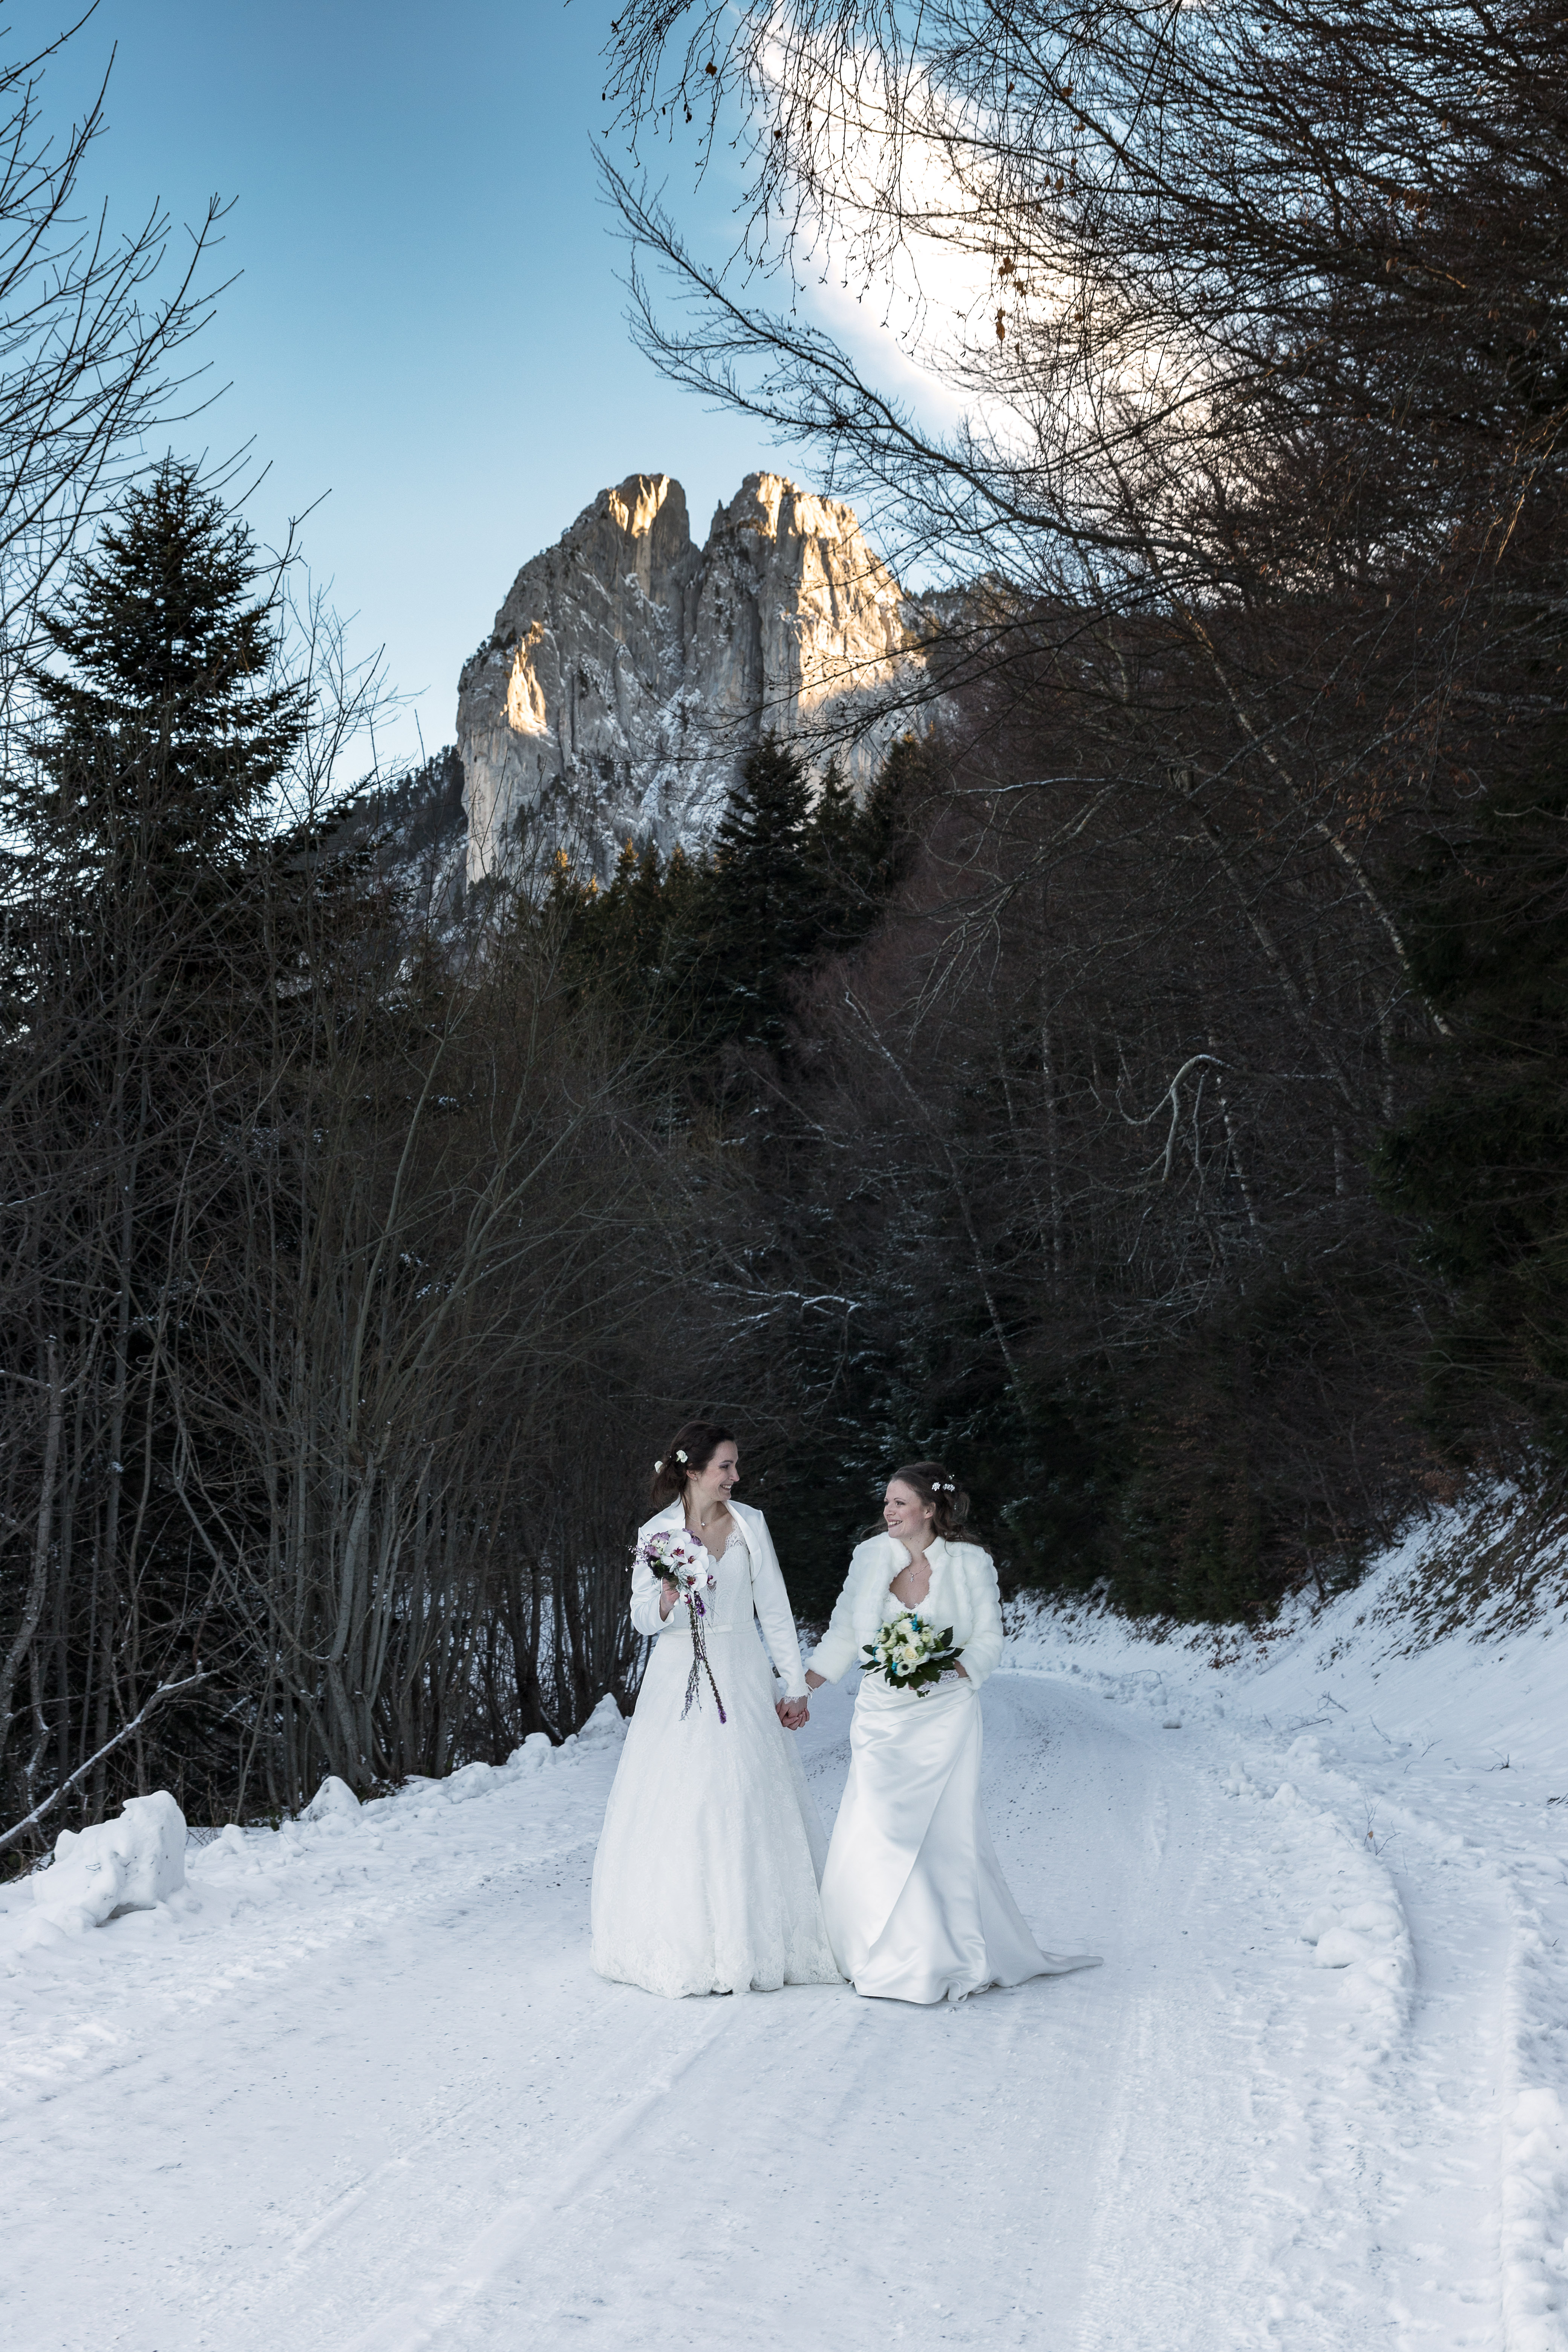 Mariage Isère